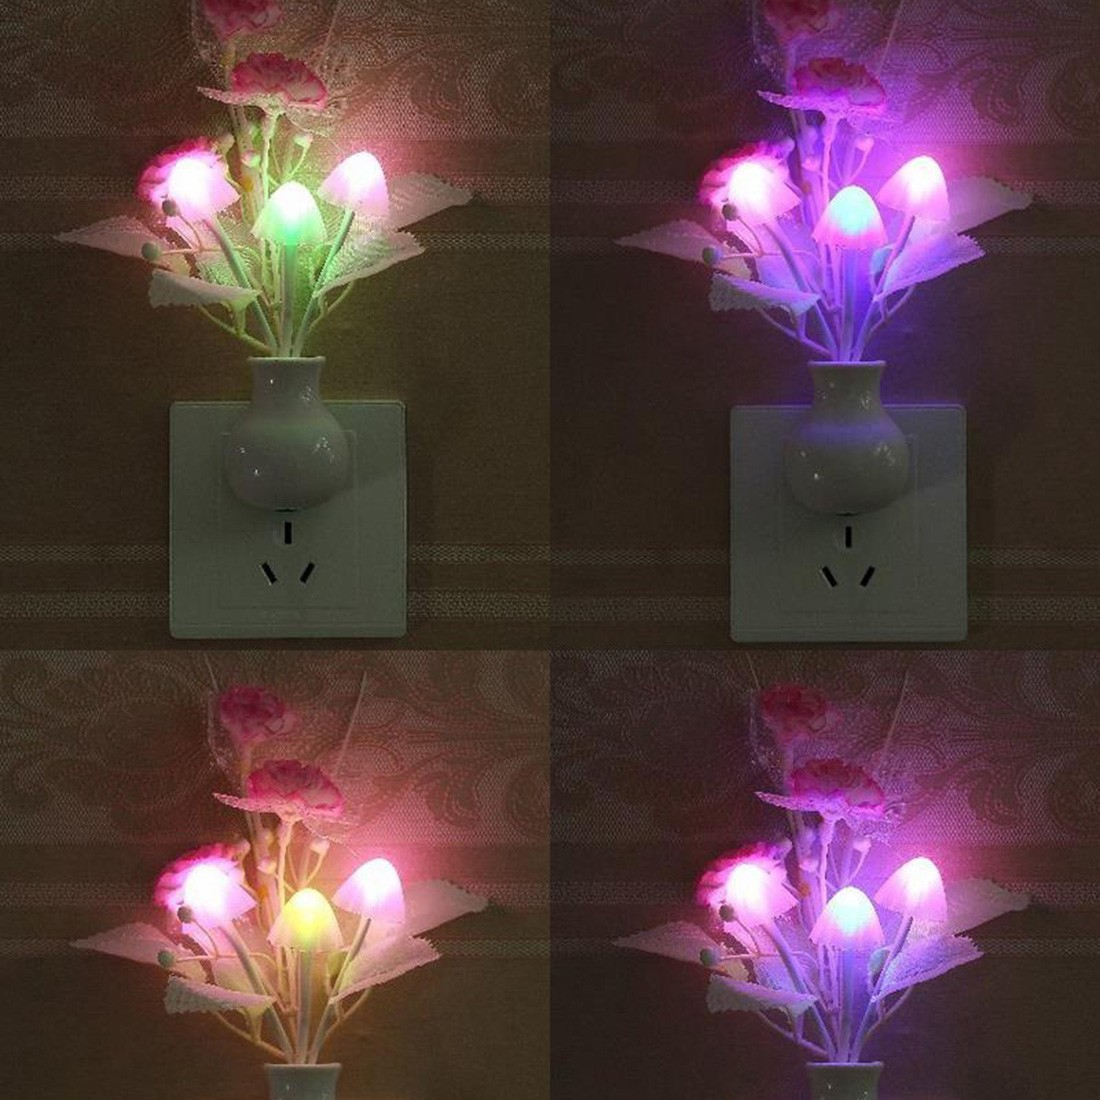 Lovely Colorful LED Lilac Night Light Lamp Mushroom Romantic Lilac Night Lighting For Home Art Decor Illumination US Plug